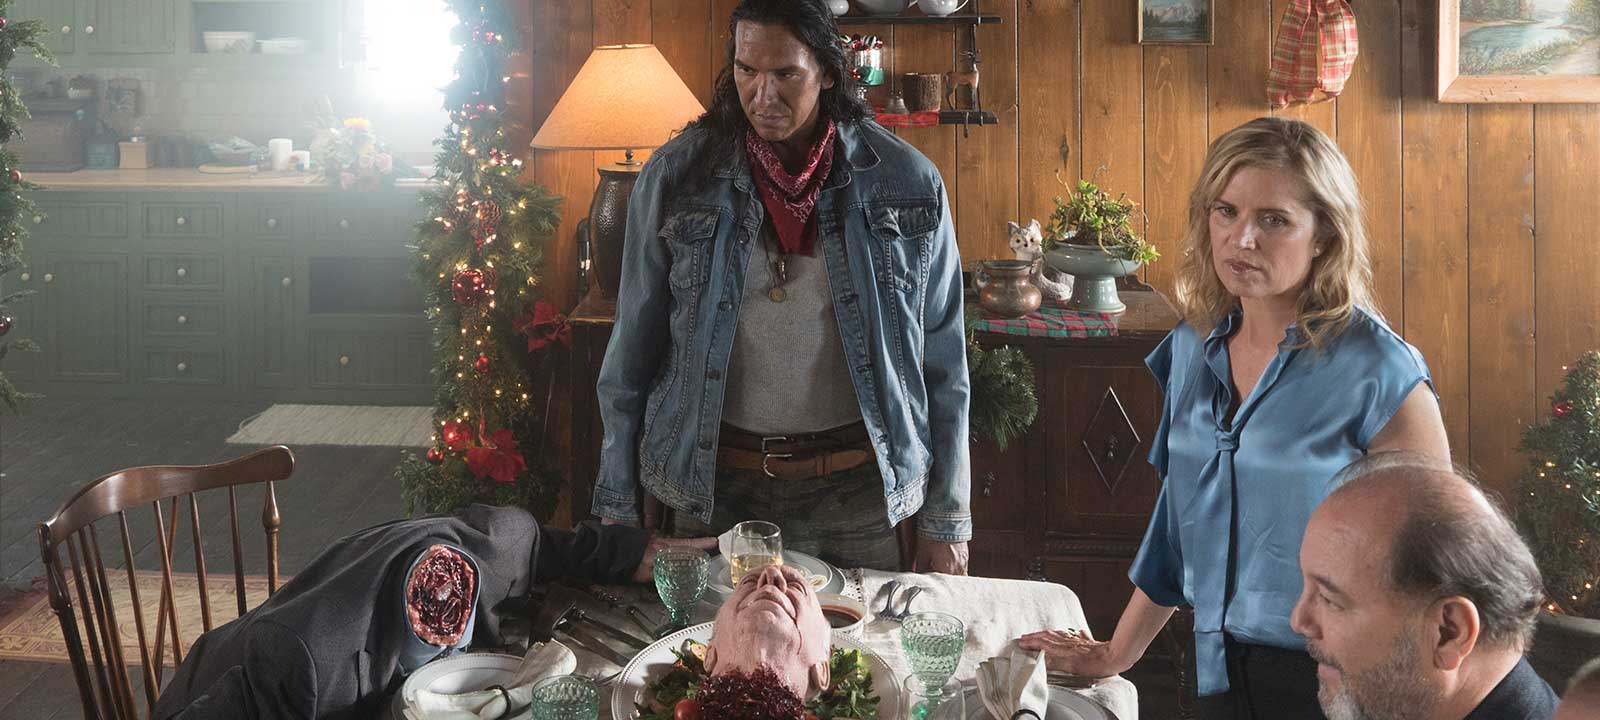 fear-the-walking-dead-episode-316-walker-greyeyes-800×600